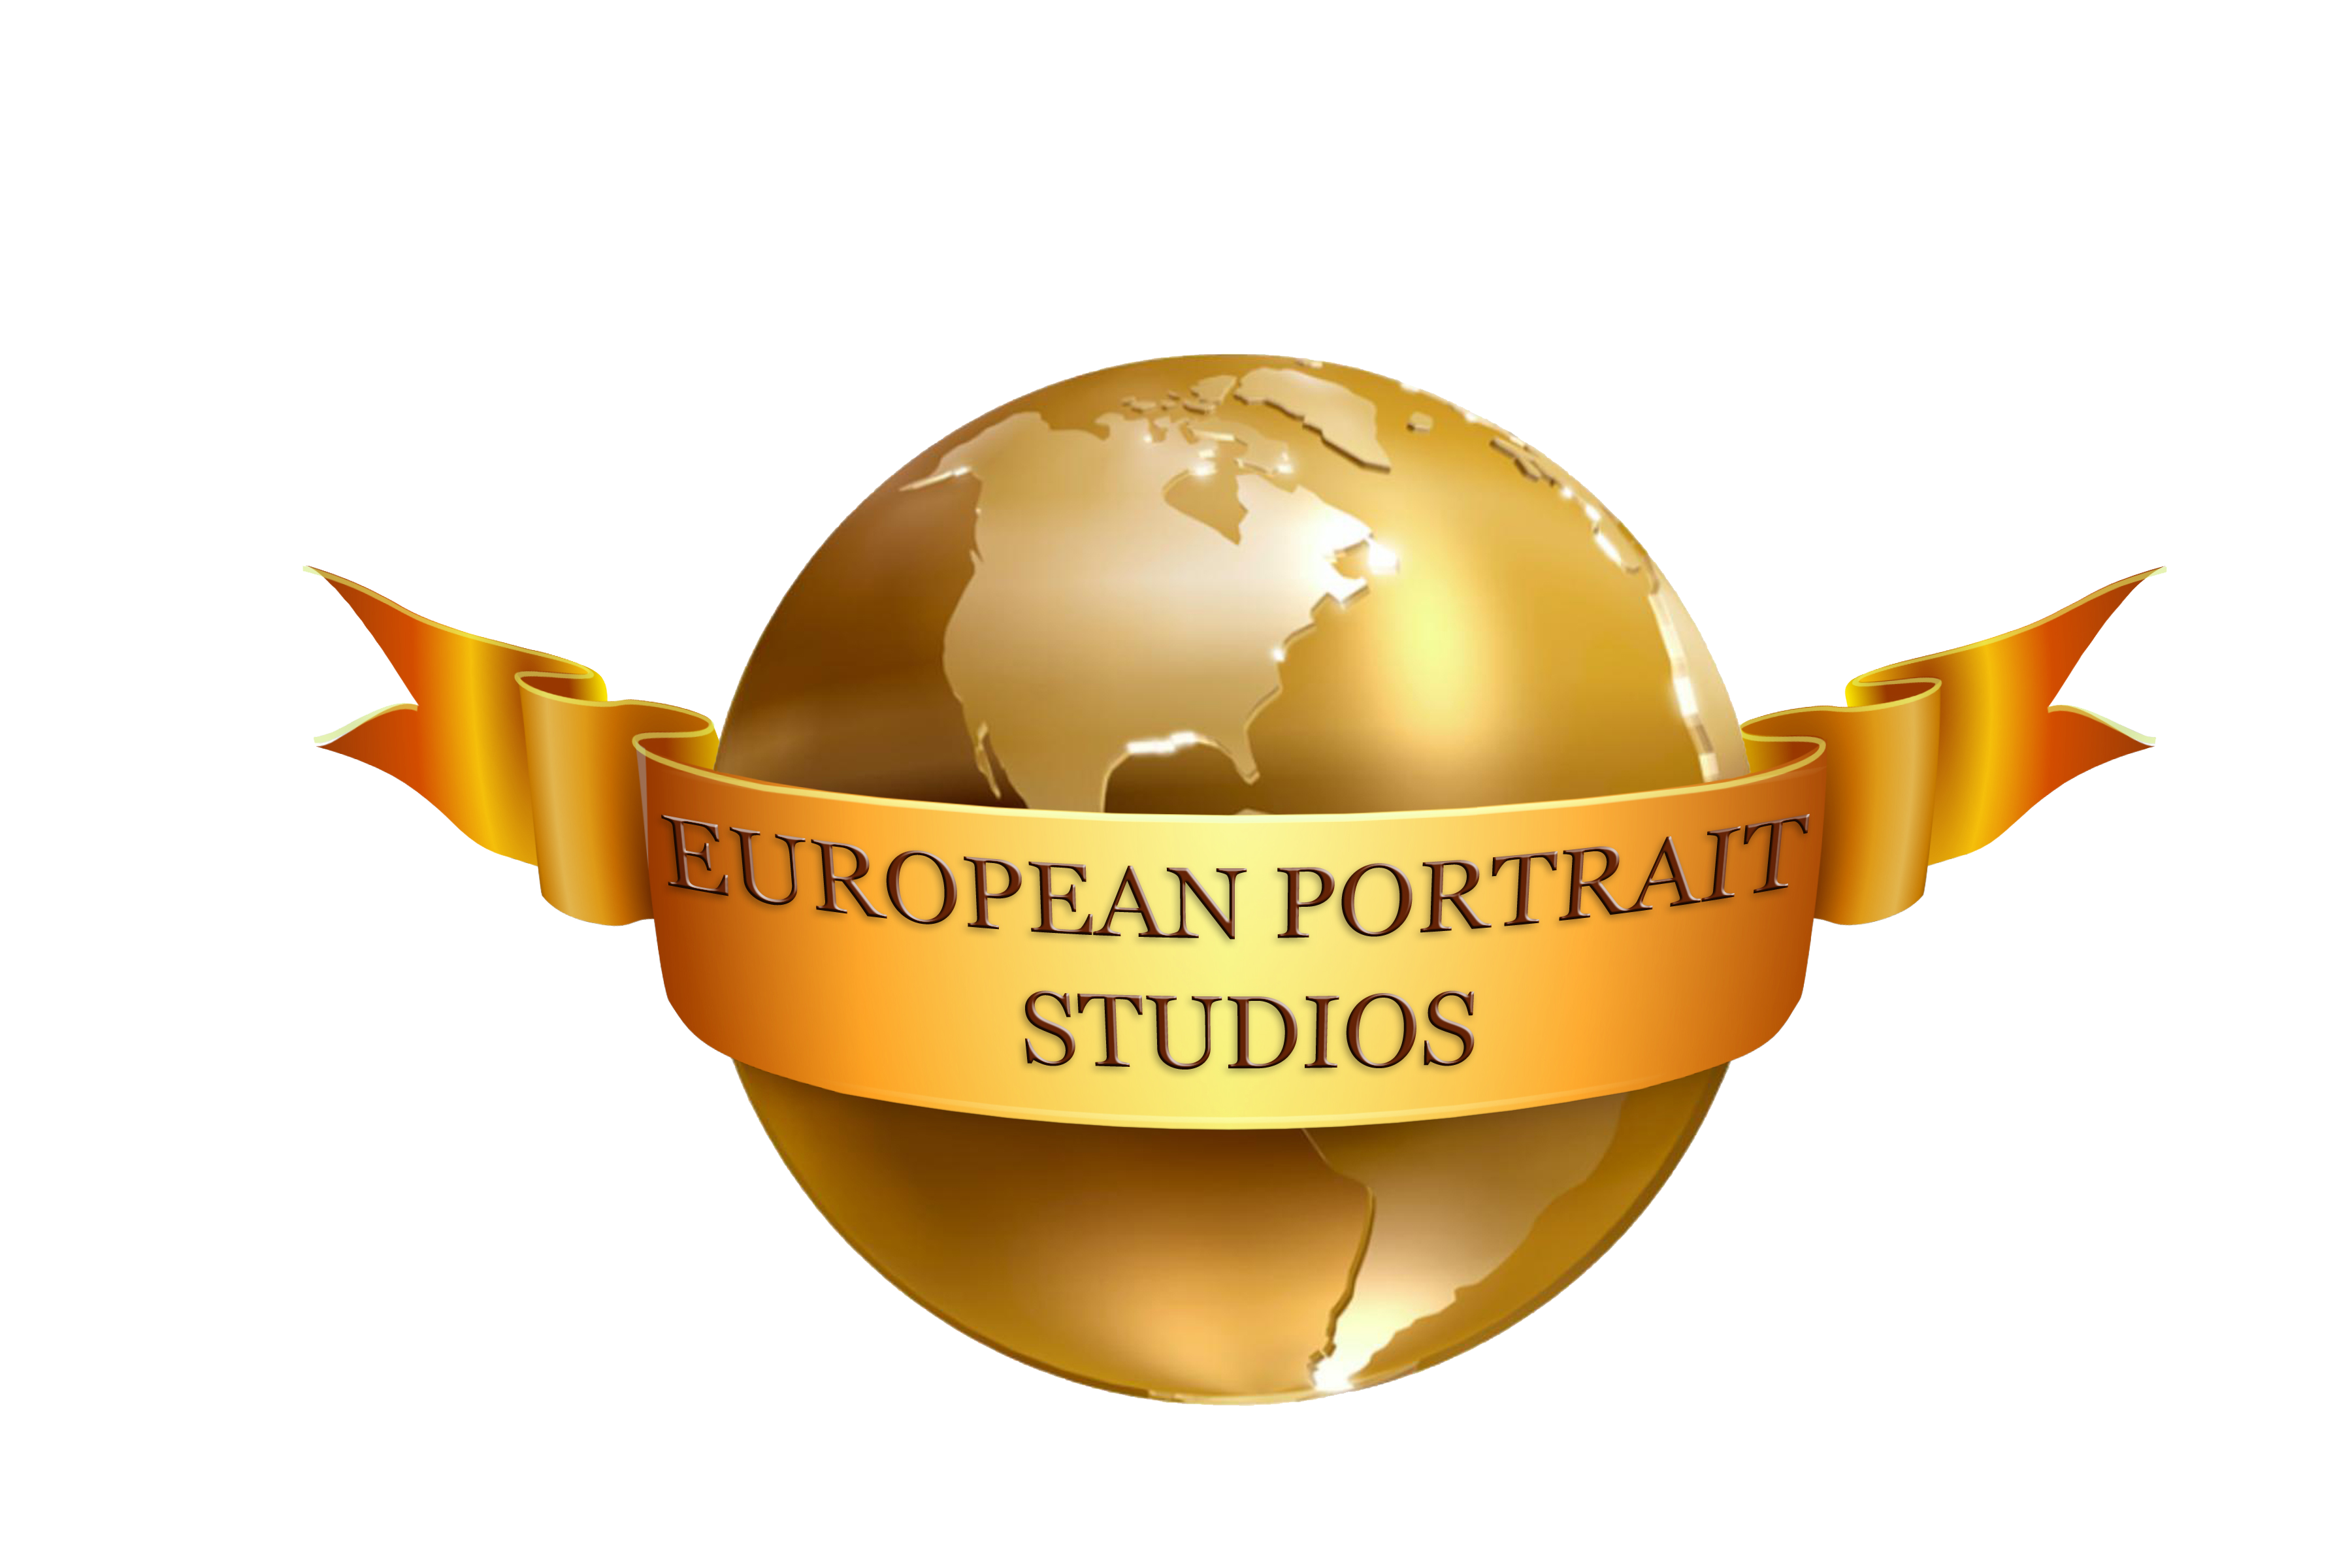 European Portrait Studios